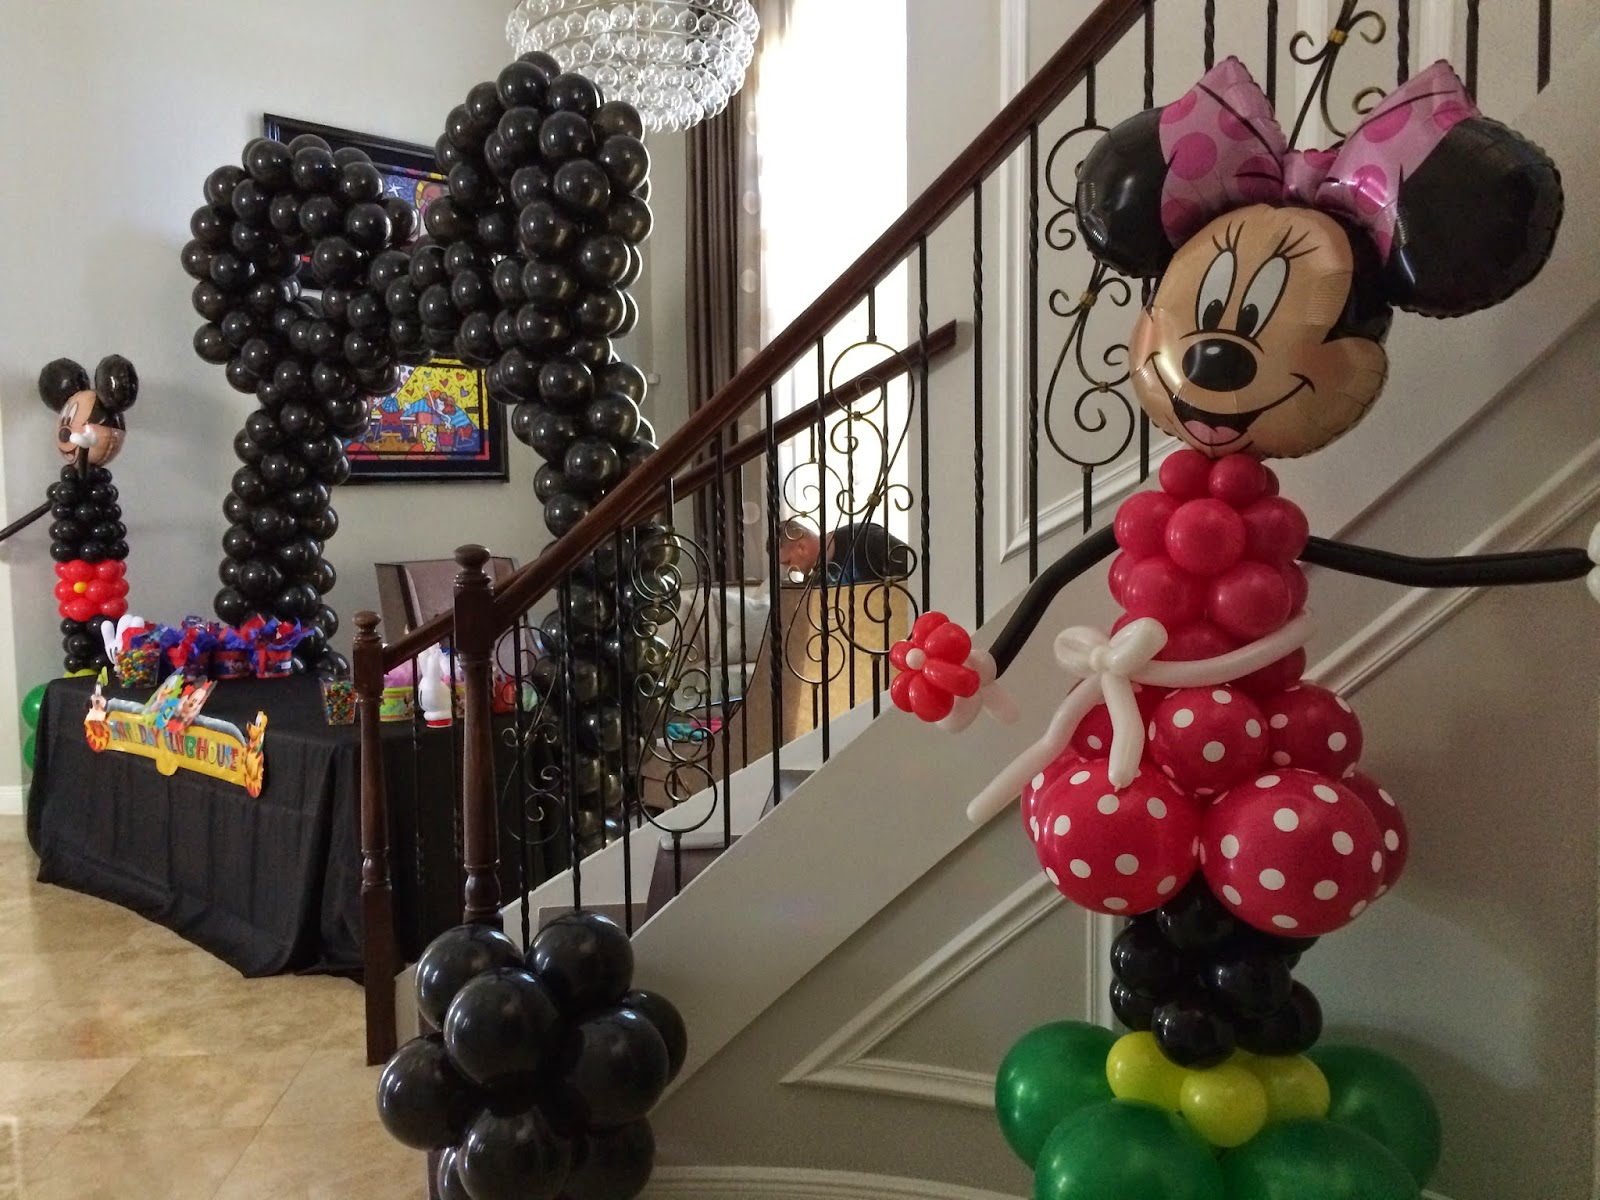 Mickey character, Minnie character, balloon  arch with Mickey ears